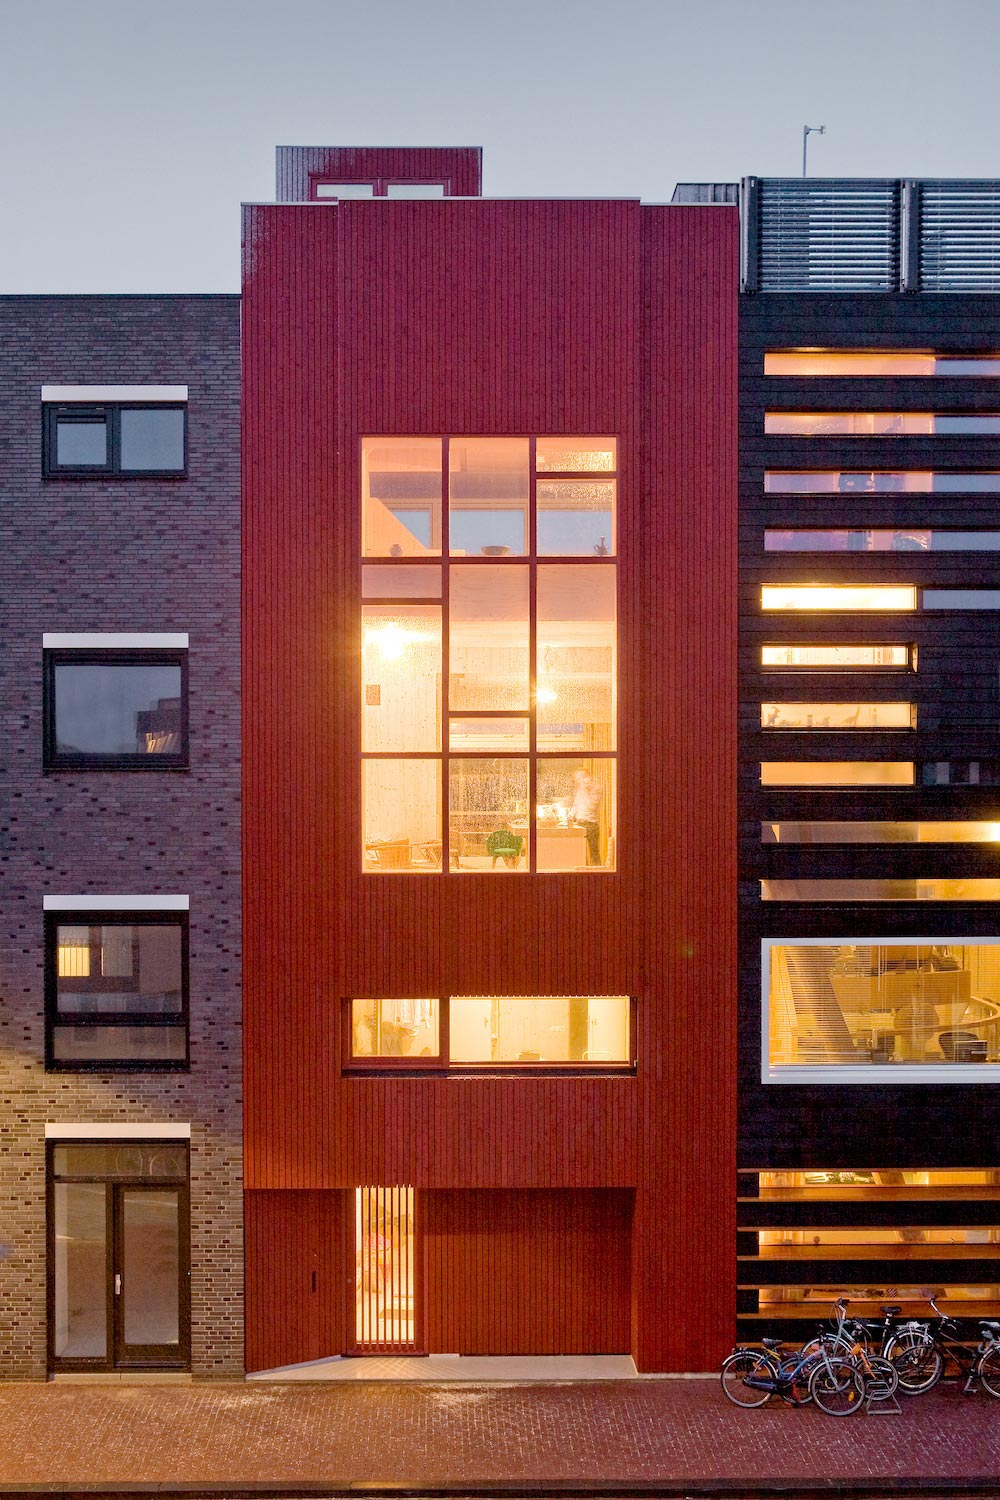 Five-storey wood-carving home built up by prefab wood elements